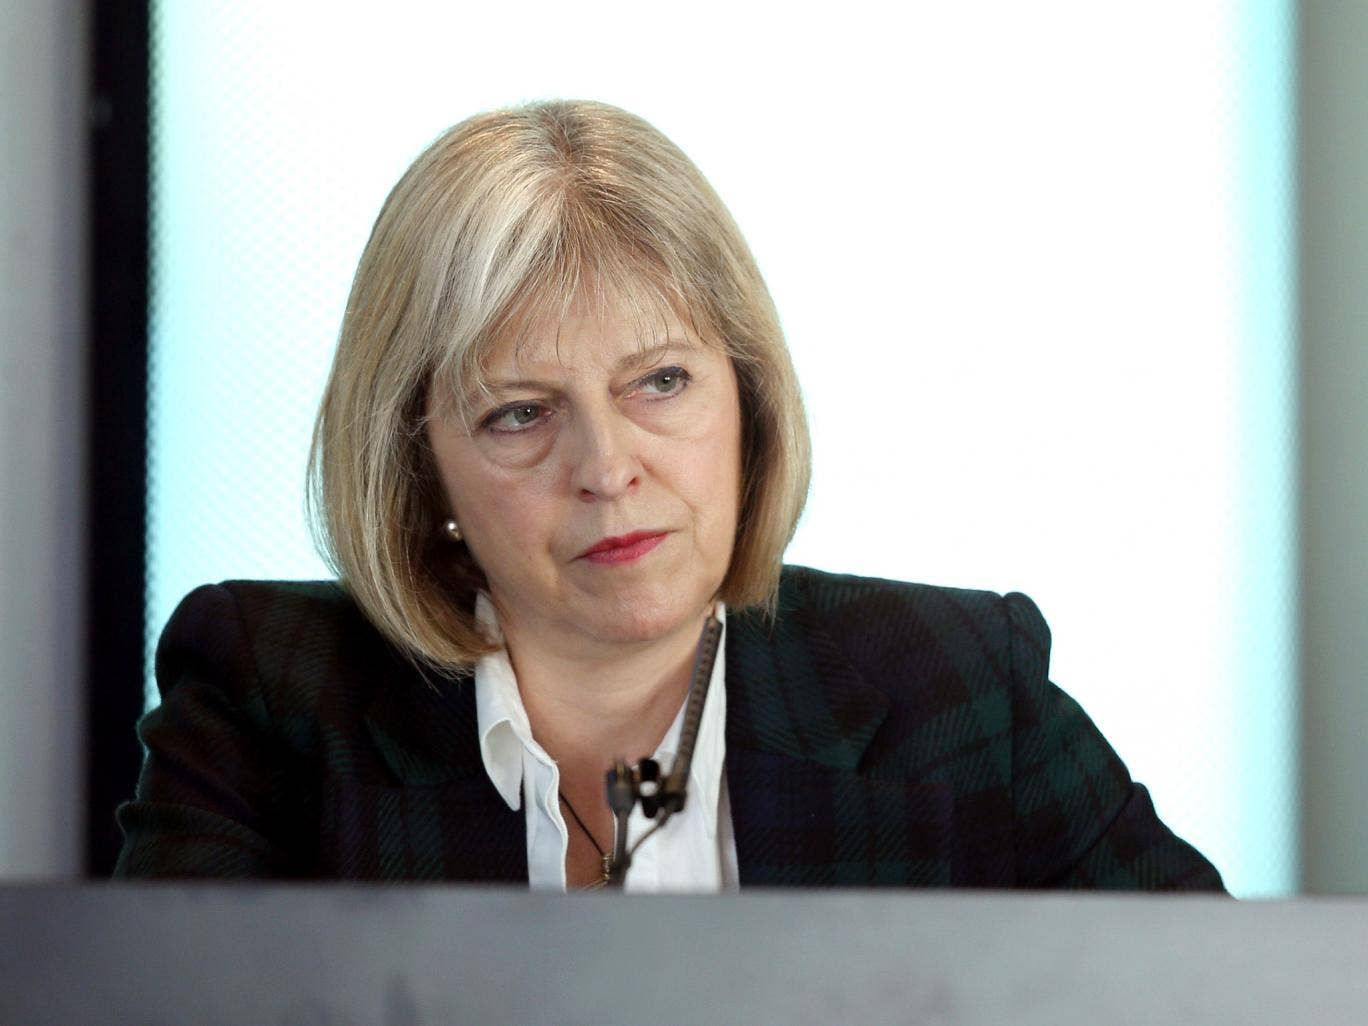 Theresa May has remained elusive on the question of what happens to the terror suspects when their restrictions are lifted in the coming days